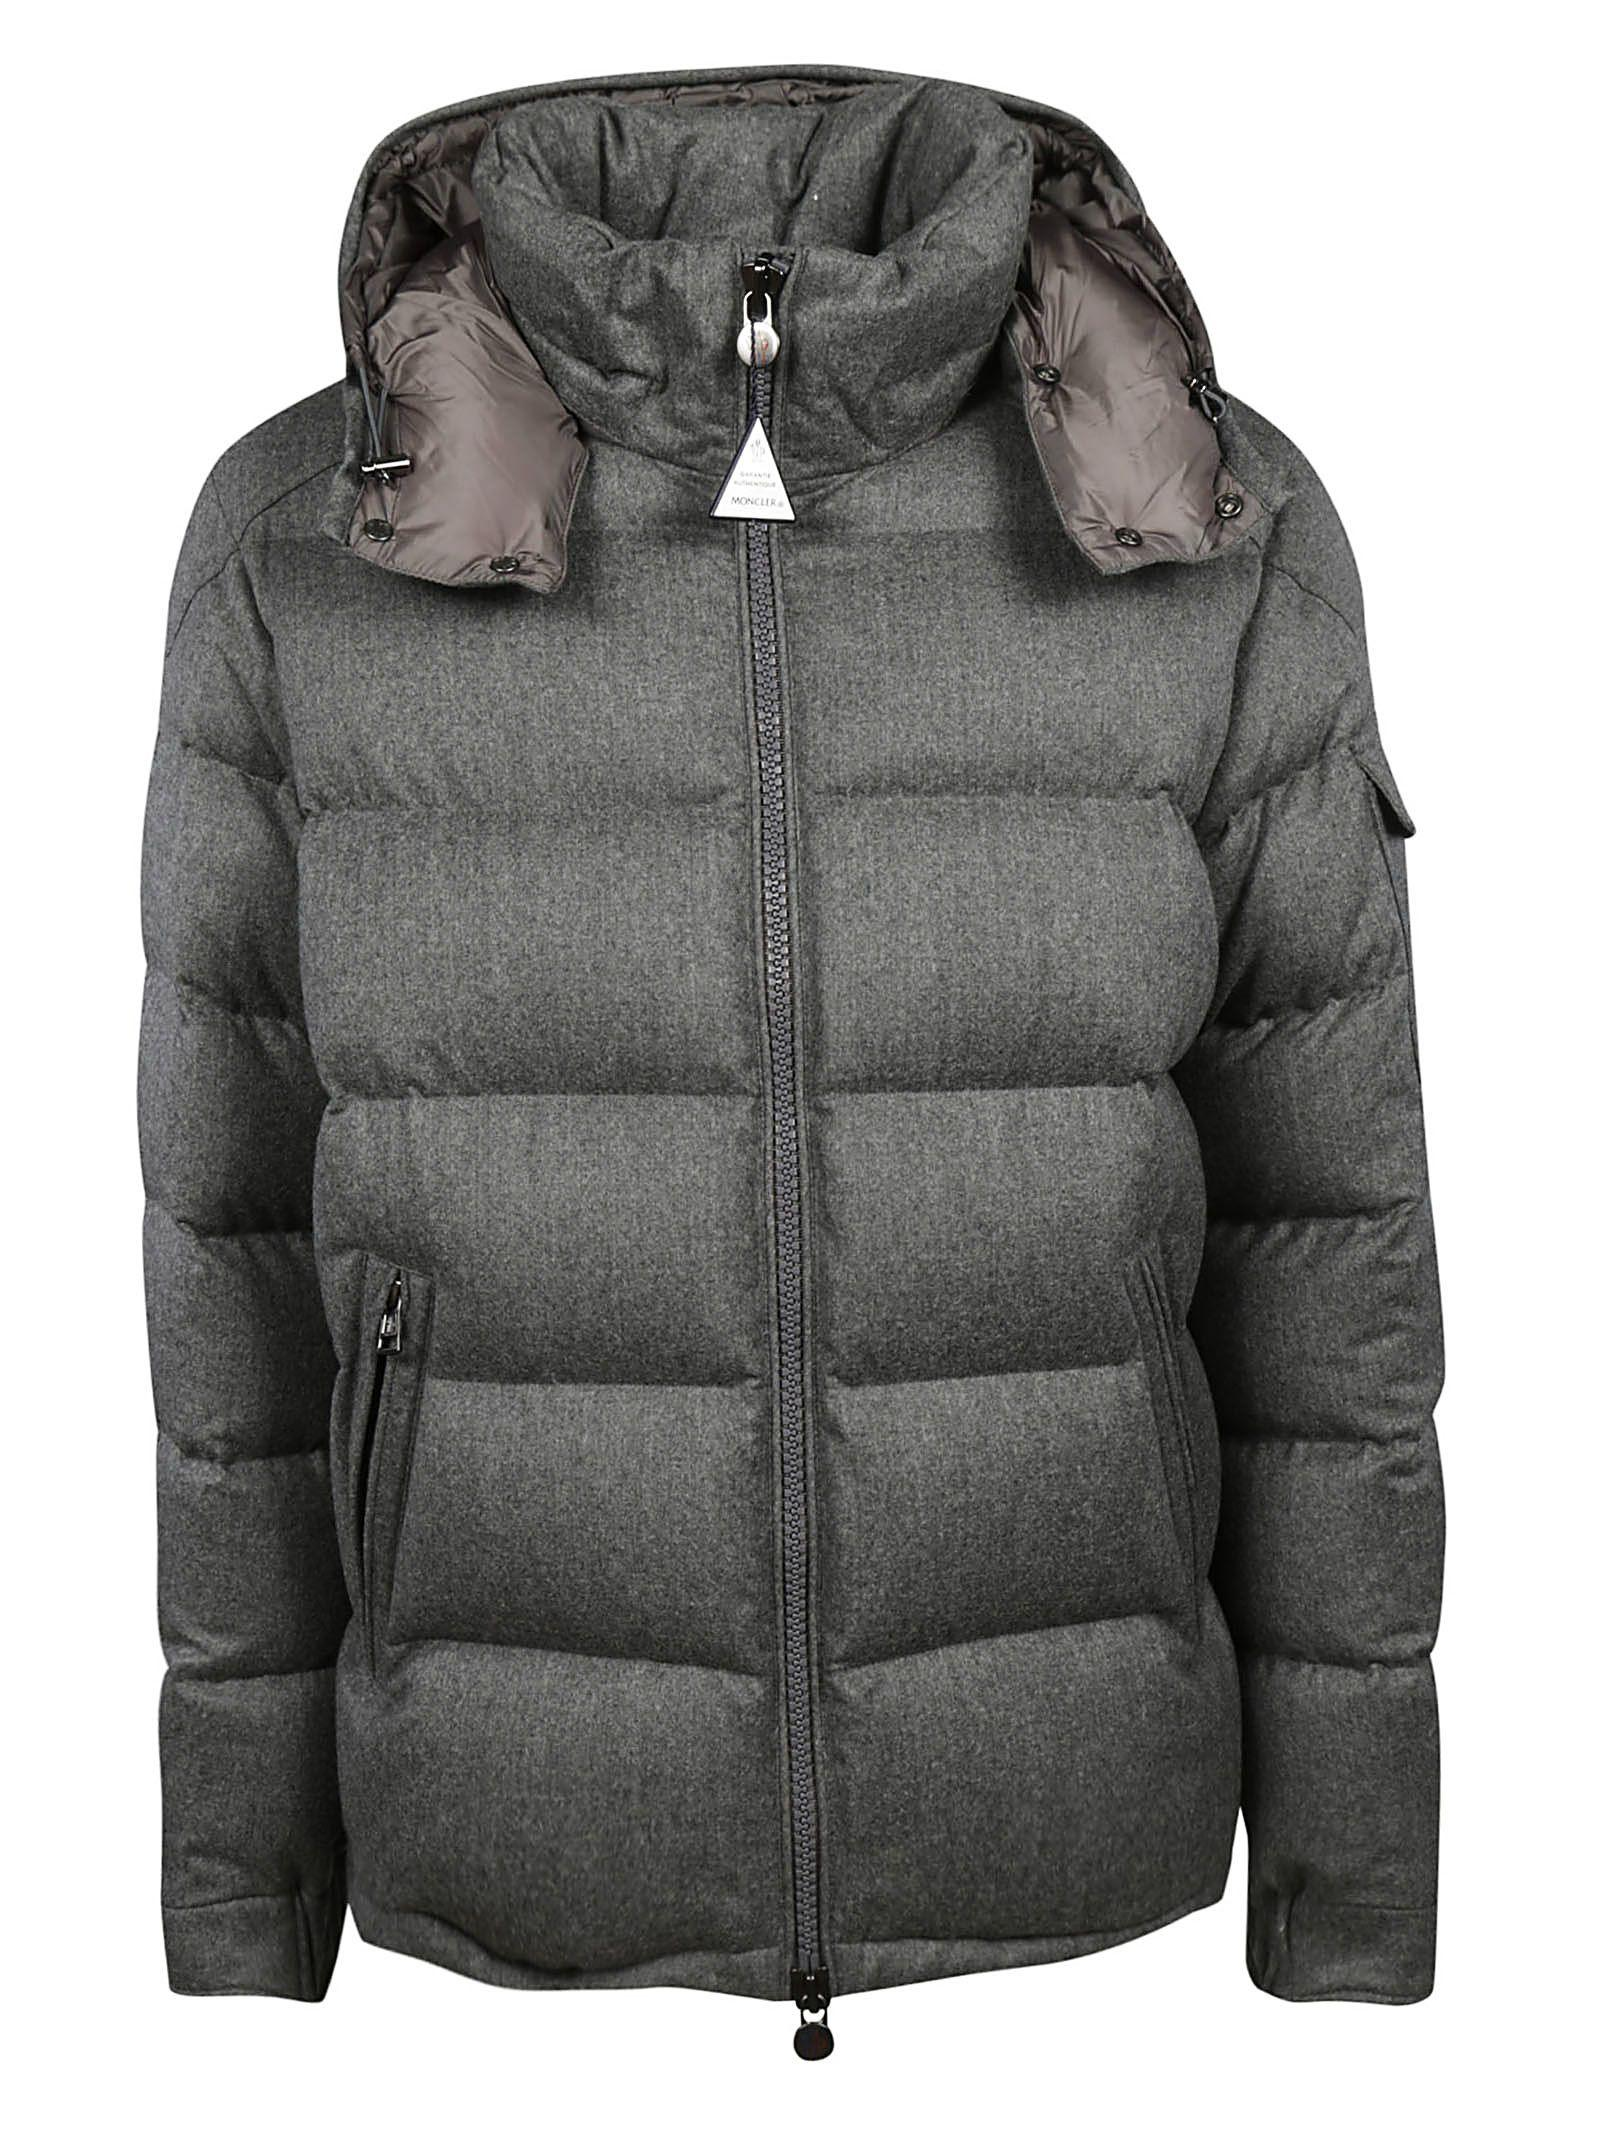 09317f854a9e Moncler Montgenevre Padded Jacket In Antracite